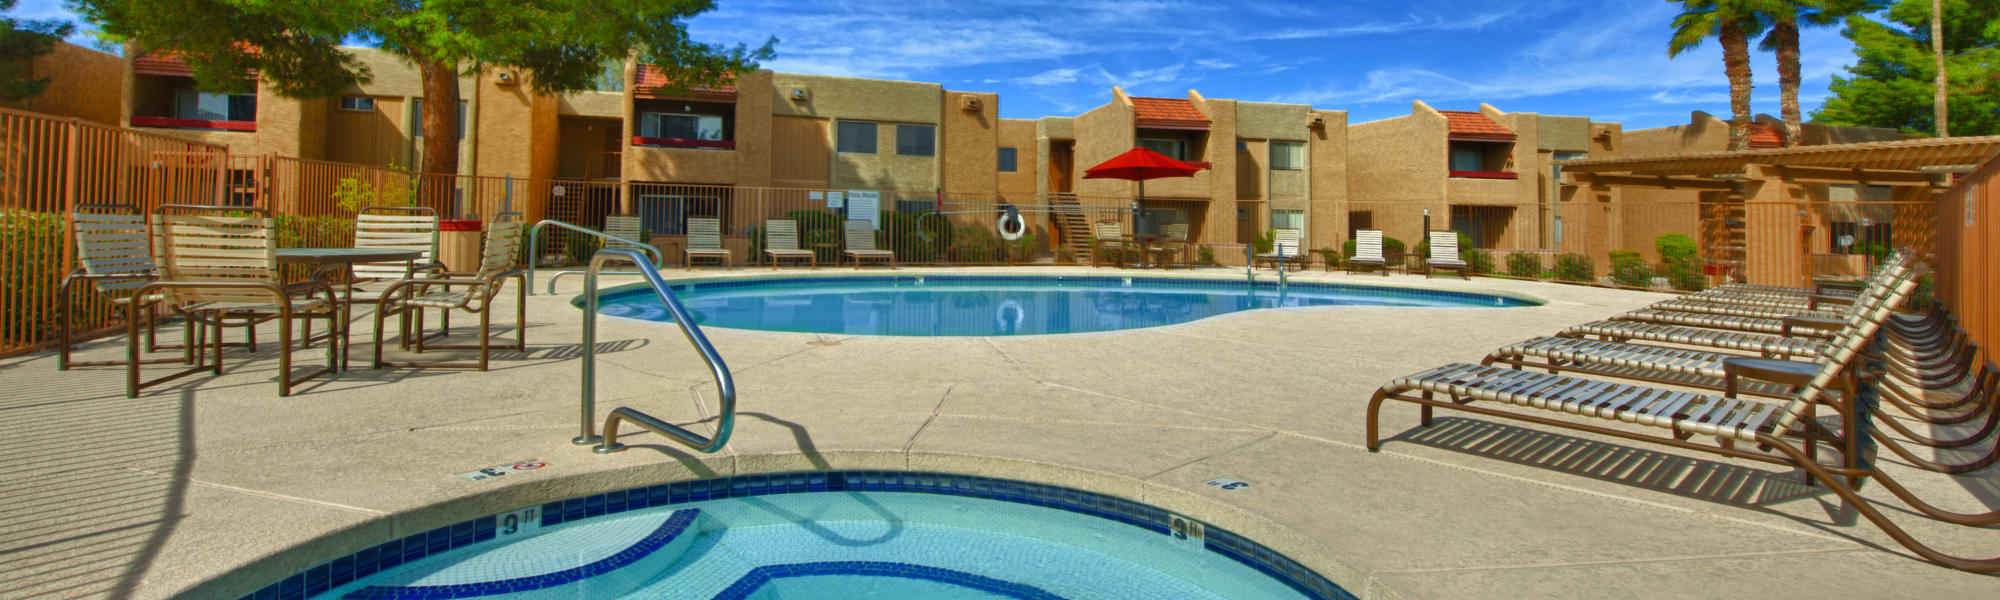 Reviews of Avia McCormick Ranch Apartments in Scottsdale, Arizona